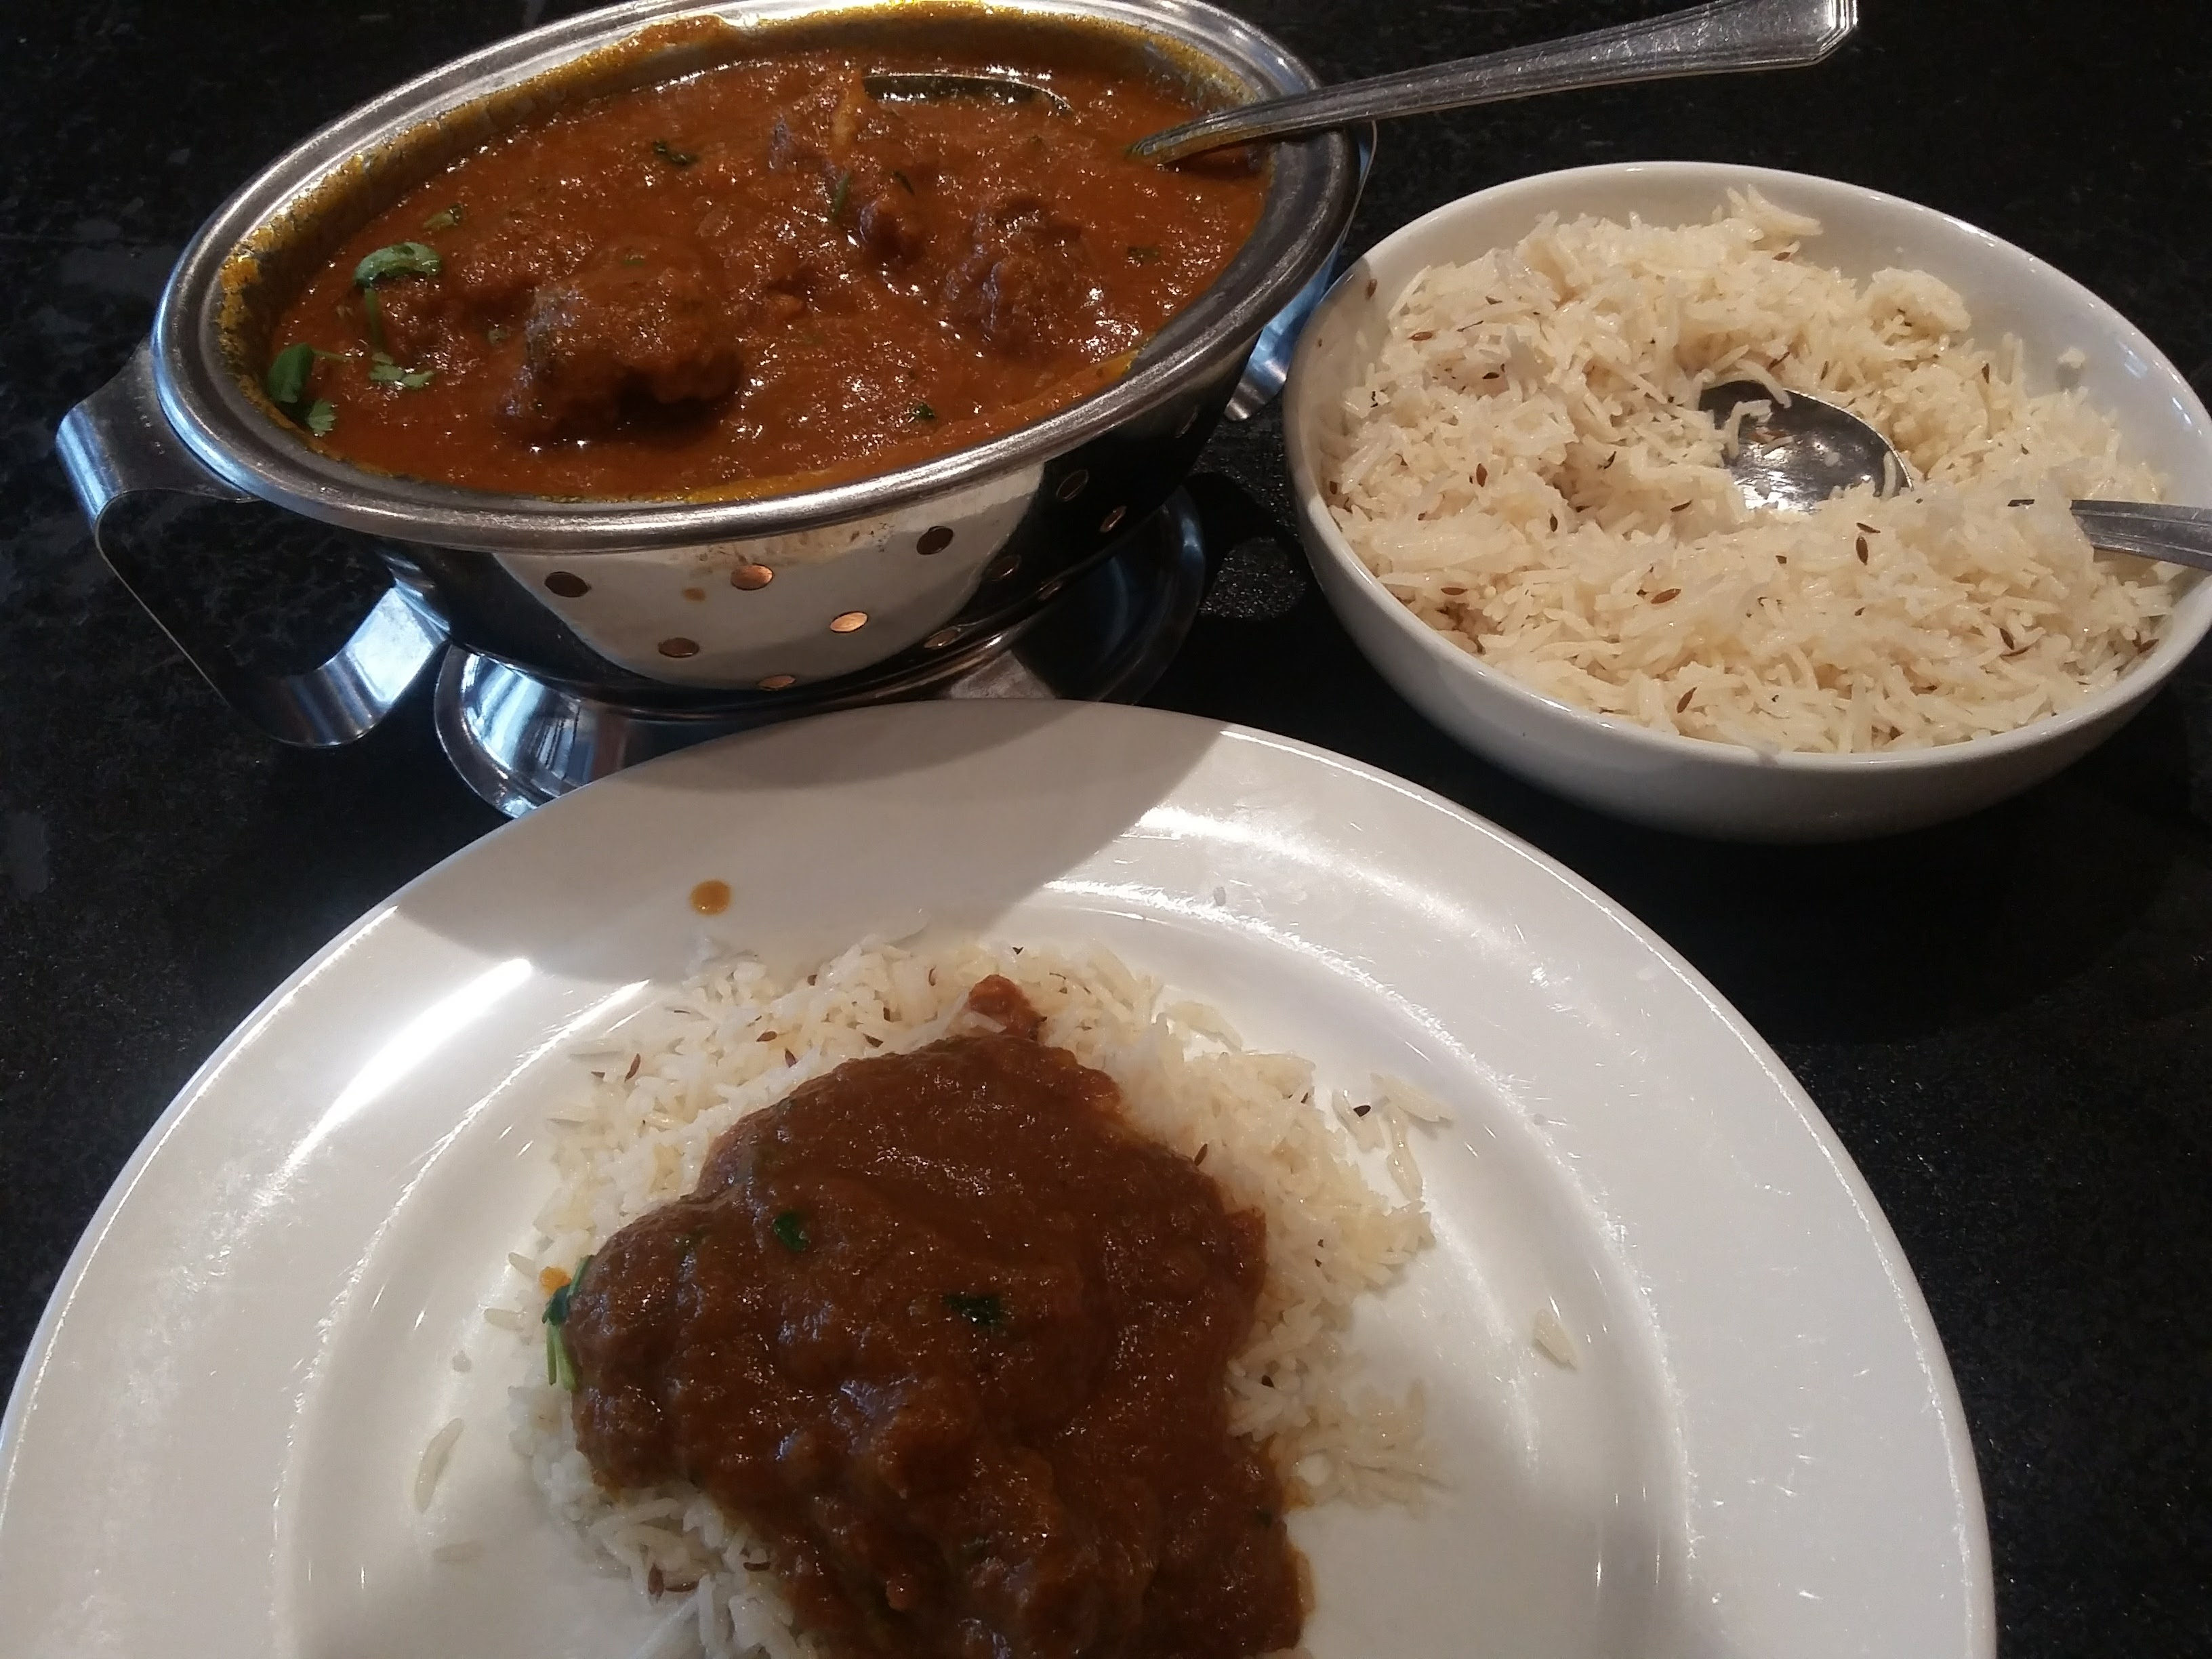 A dinner stop of Indian cuisine to mark Diwali festival of light with one plate of delish rogan josh